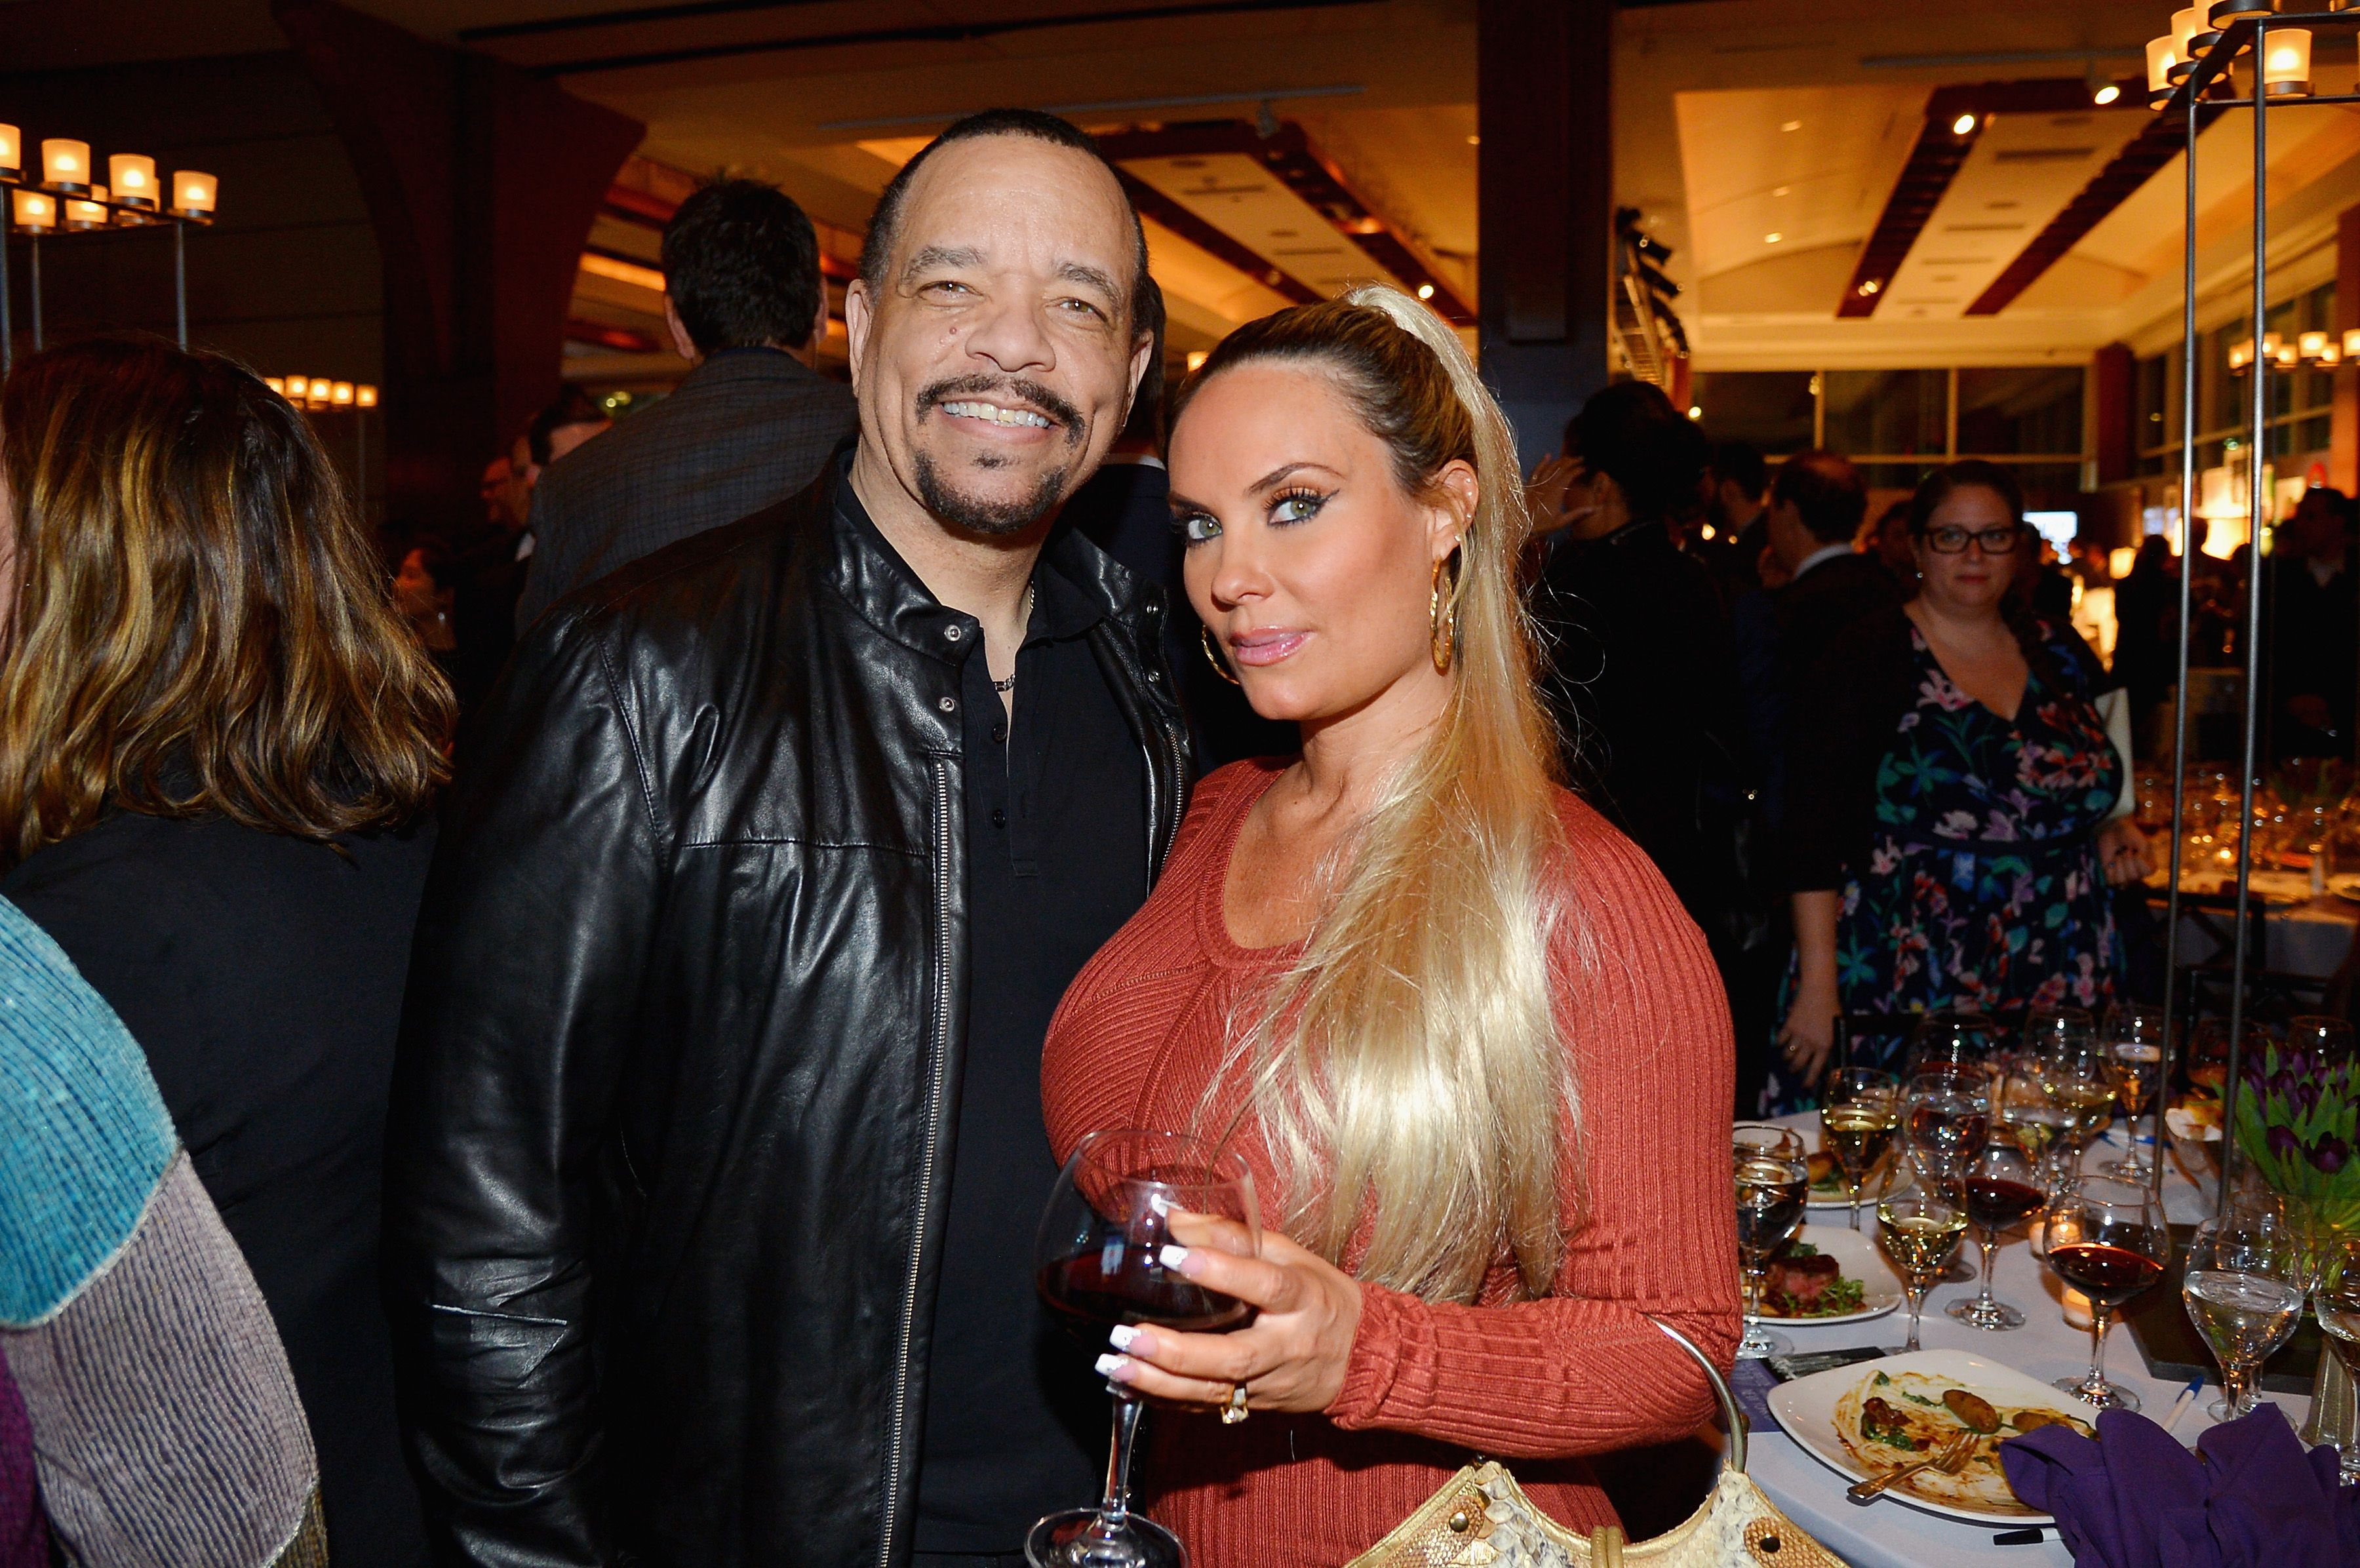 Ice-T and Coco Austin at the Bailey House Gala & Auction event in New York City in 2017. | Photo: Getty Images